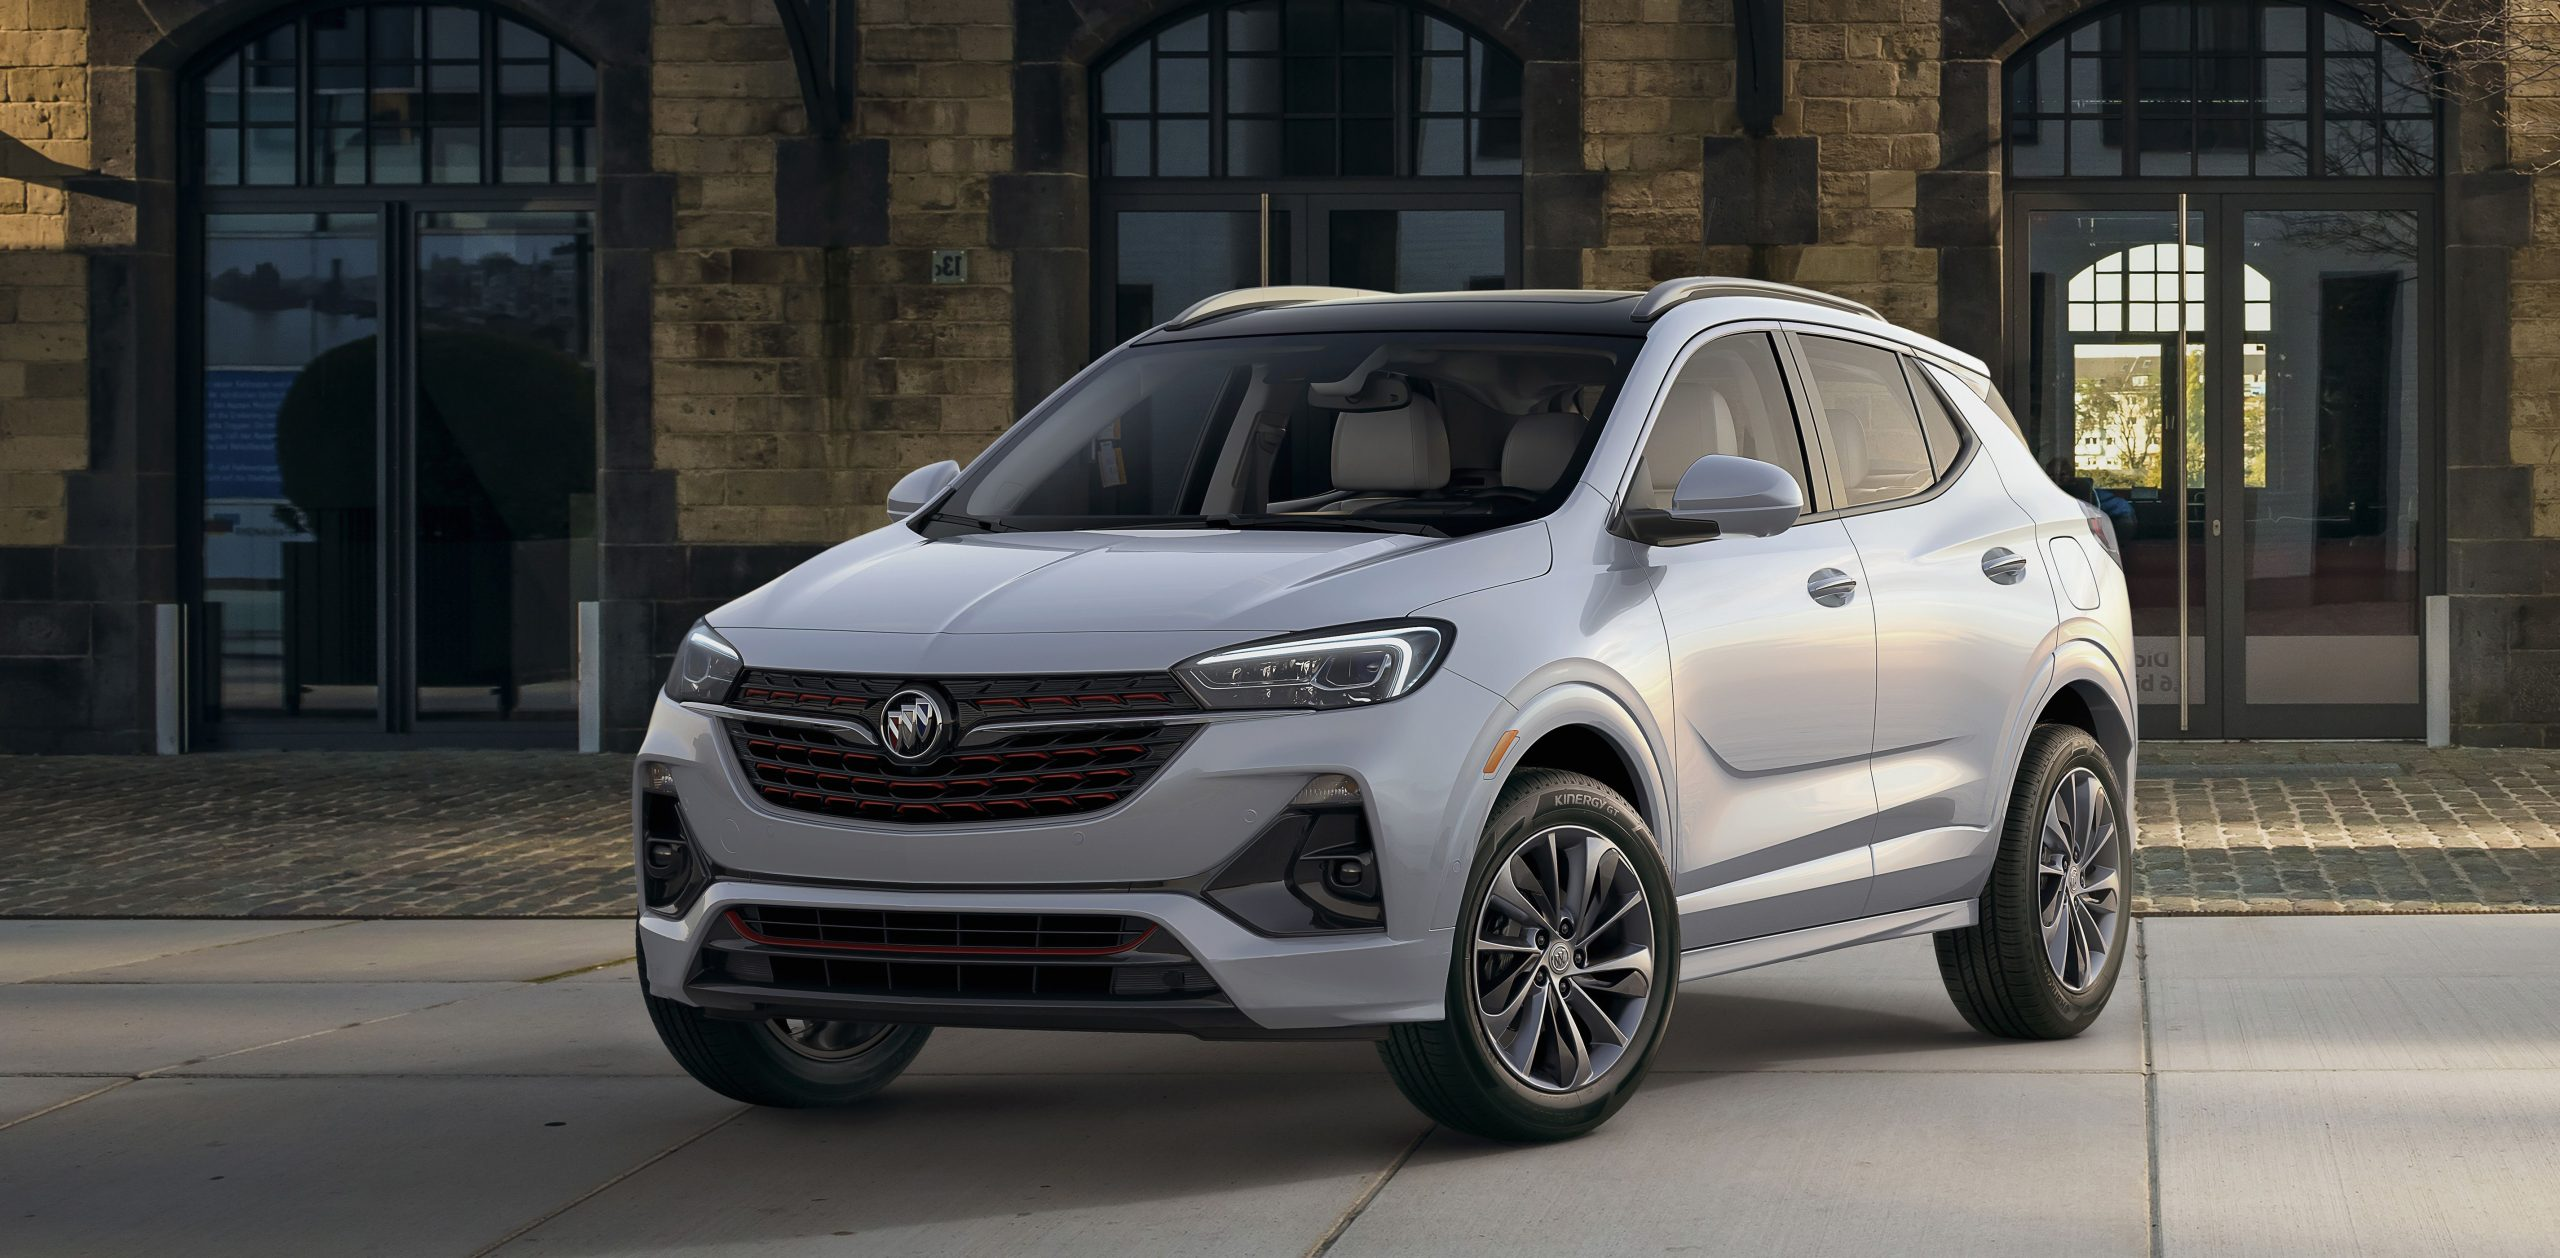 2020 Buick Encore Gx: What We Know So Far 2021 Buick Encore Engine Size, Inside, Images